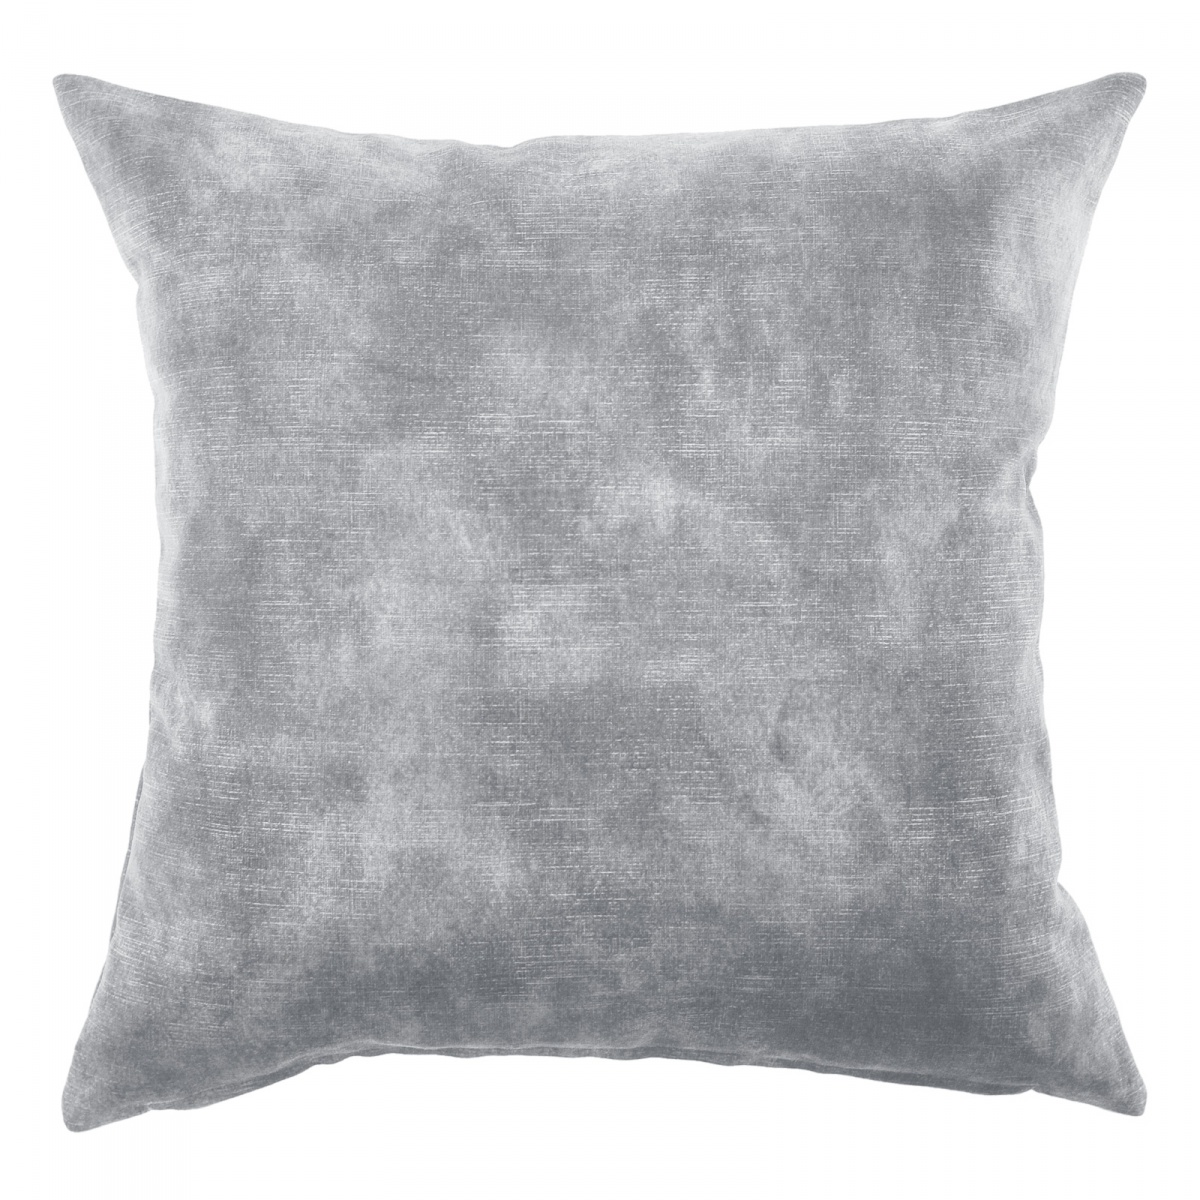 Lovely Cement Velvet Cushion - 50x50cm